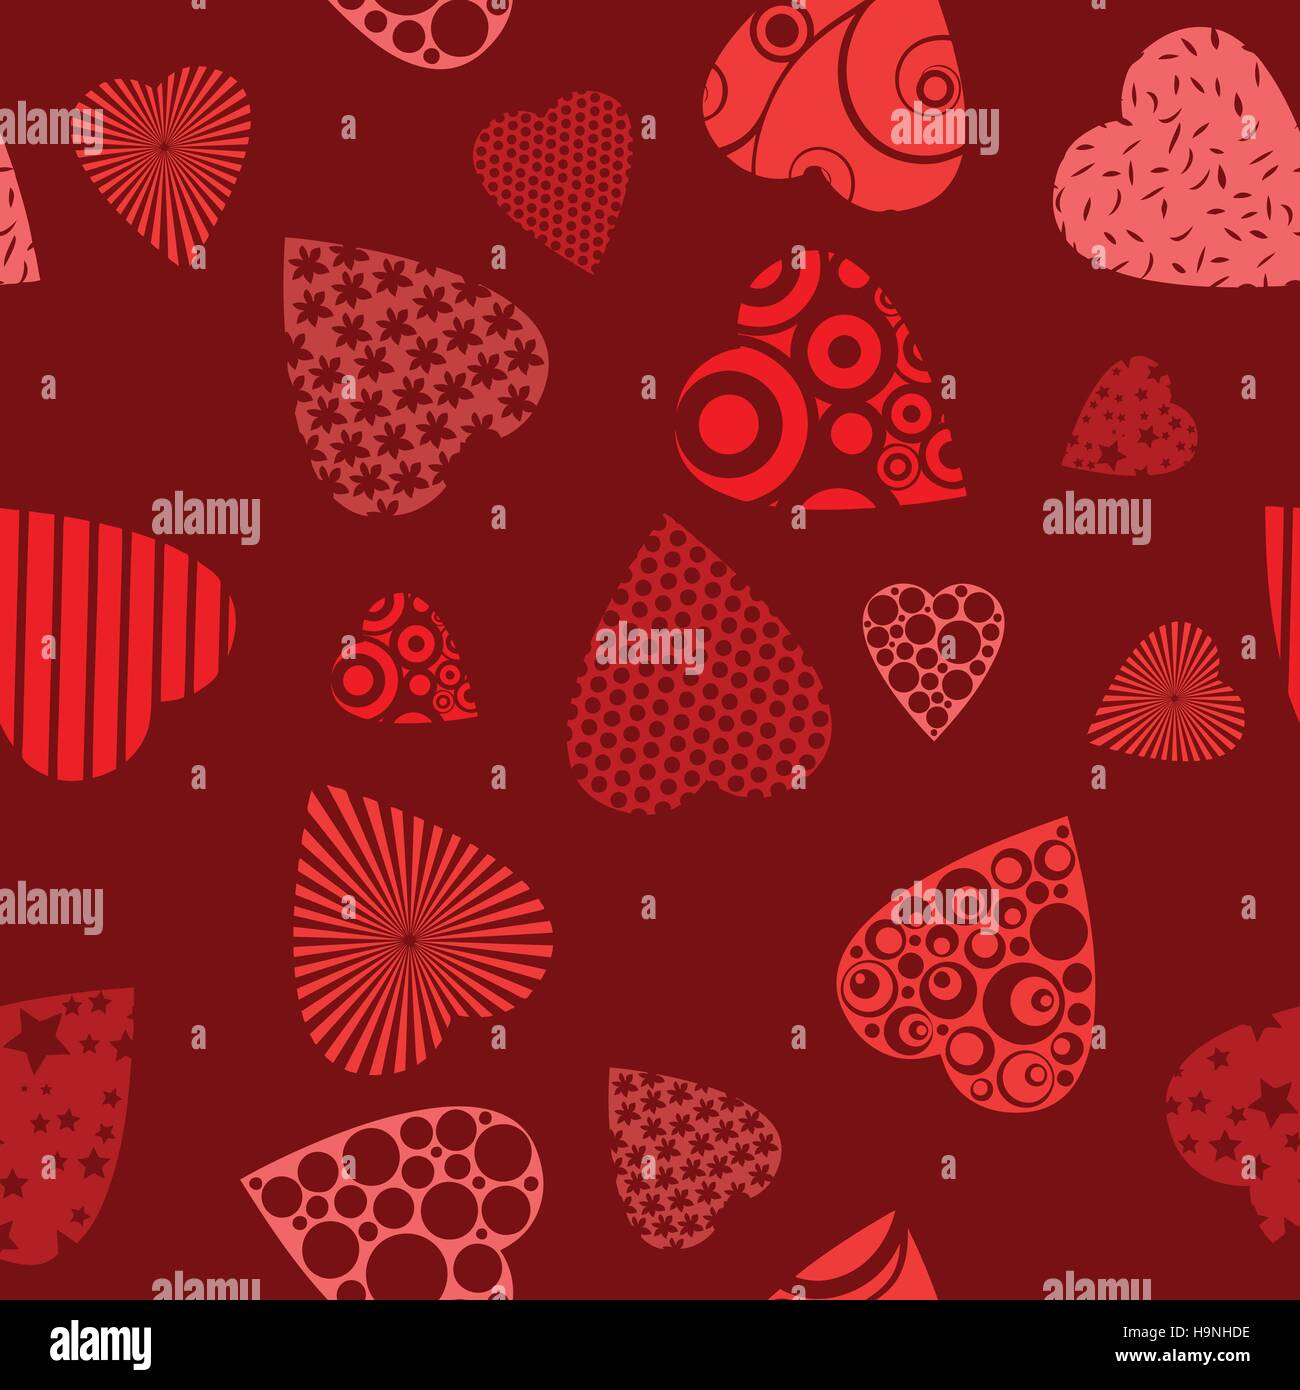 Seamless pattern with hearts - Vector illustration for design - Stock Image